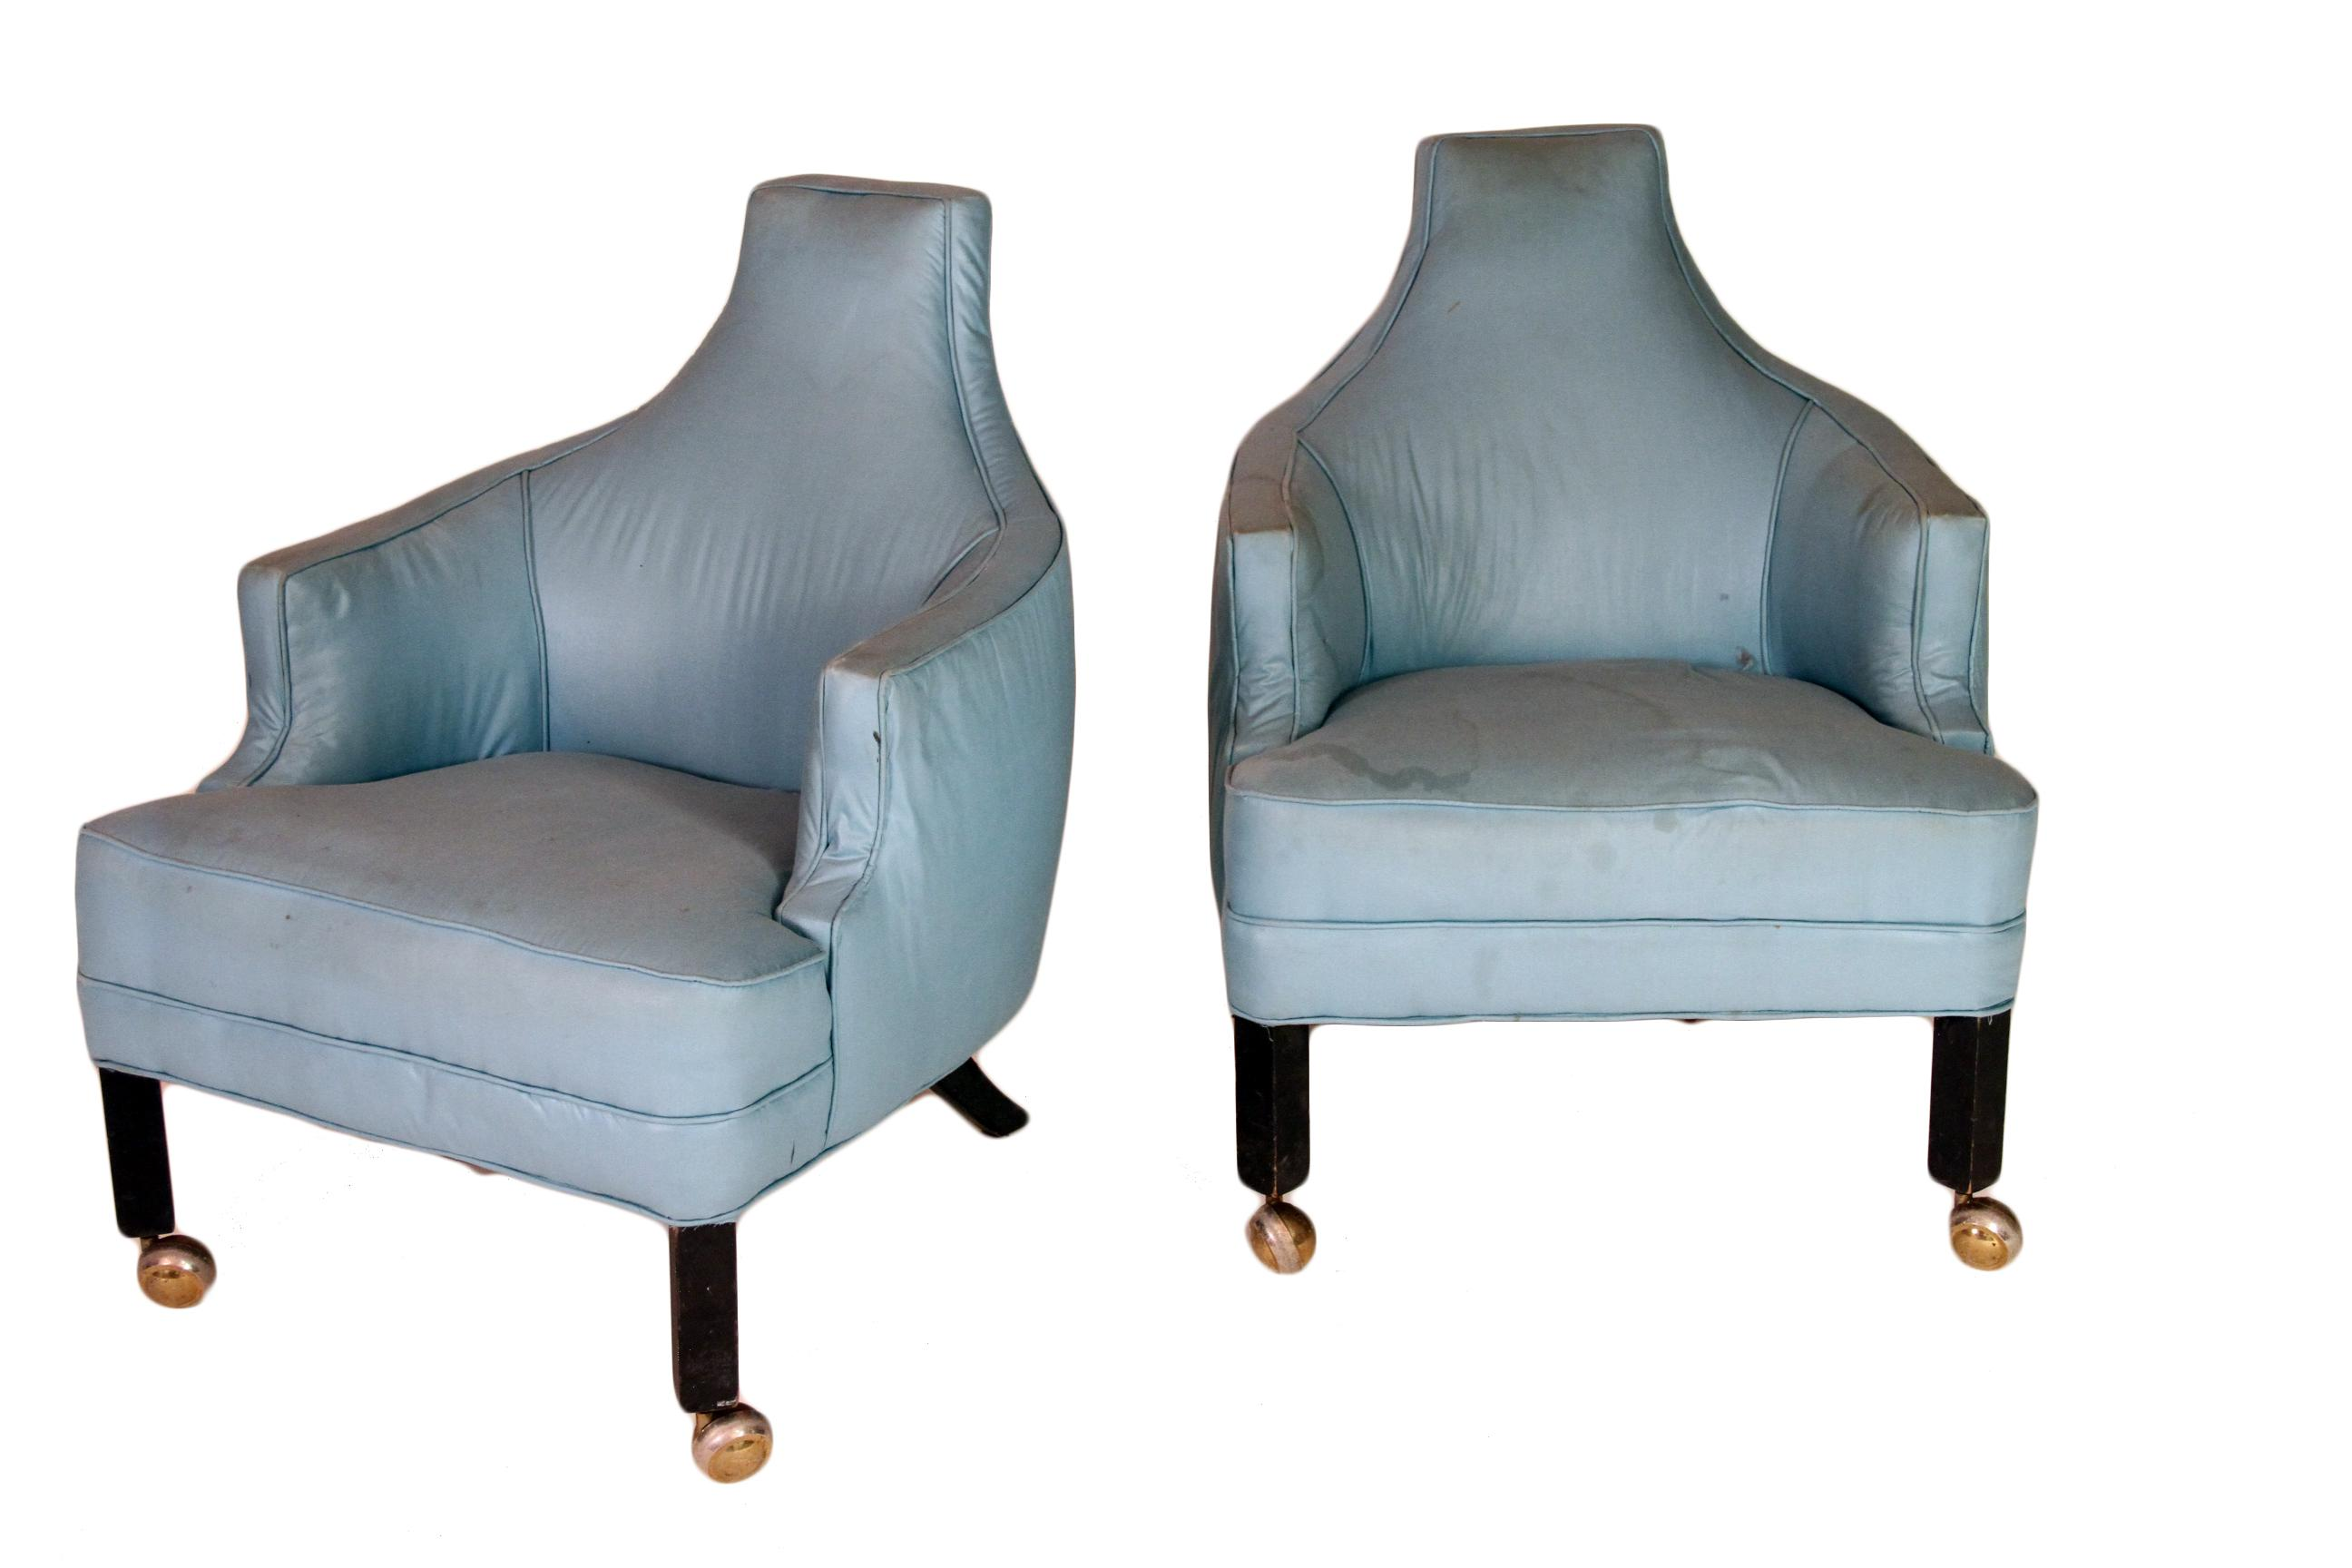 Sultanchic Scours The Globe For Unusual Furniture Finds. On One Of Our  Design Treks We. Contemporary Baby Blue Accent Chairs   A ...